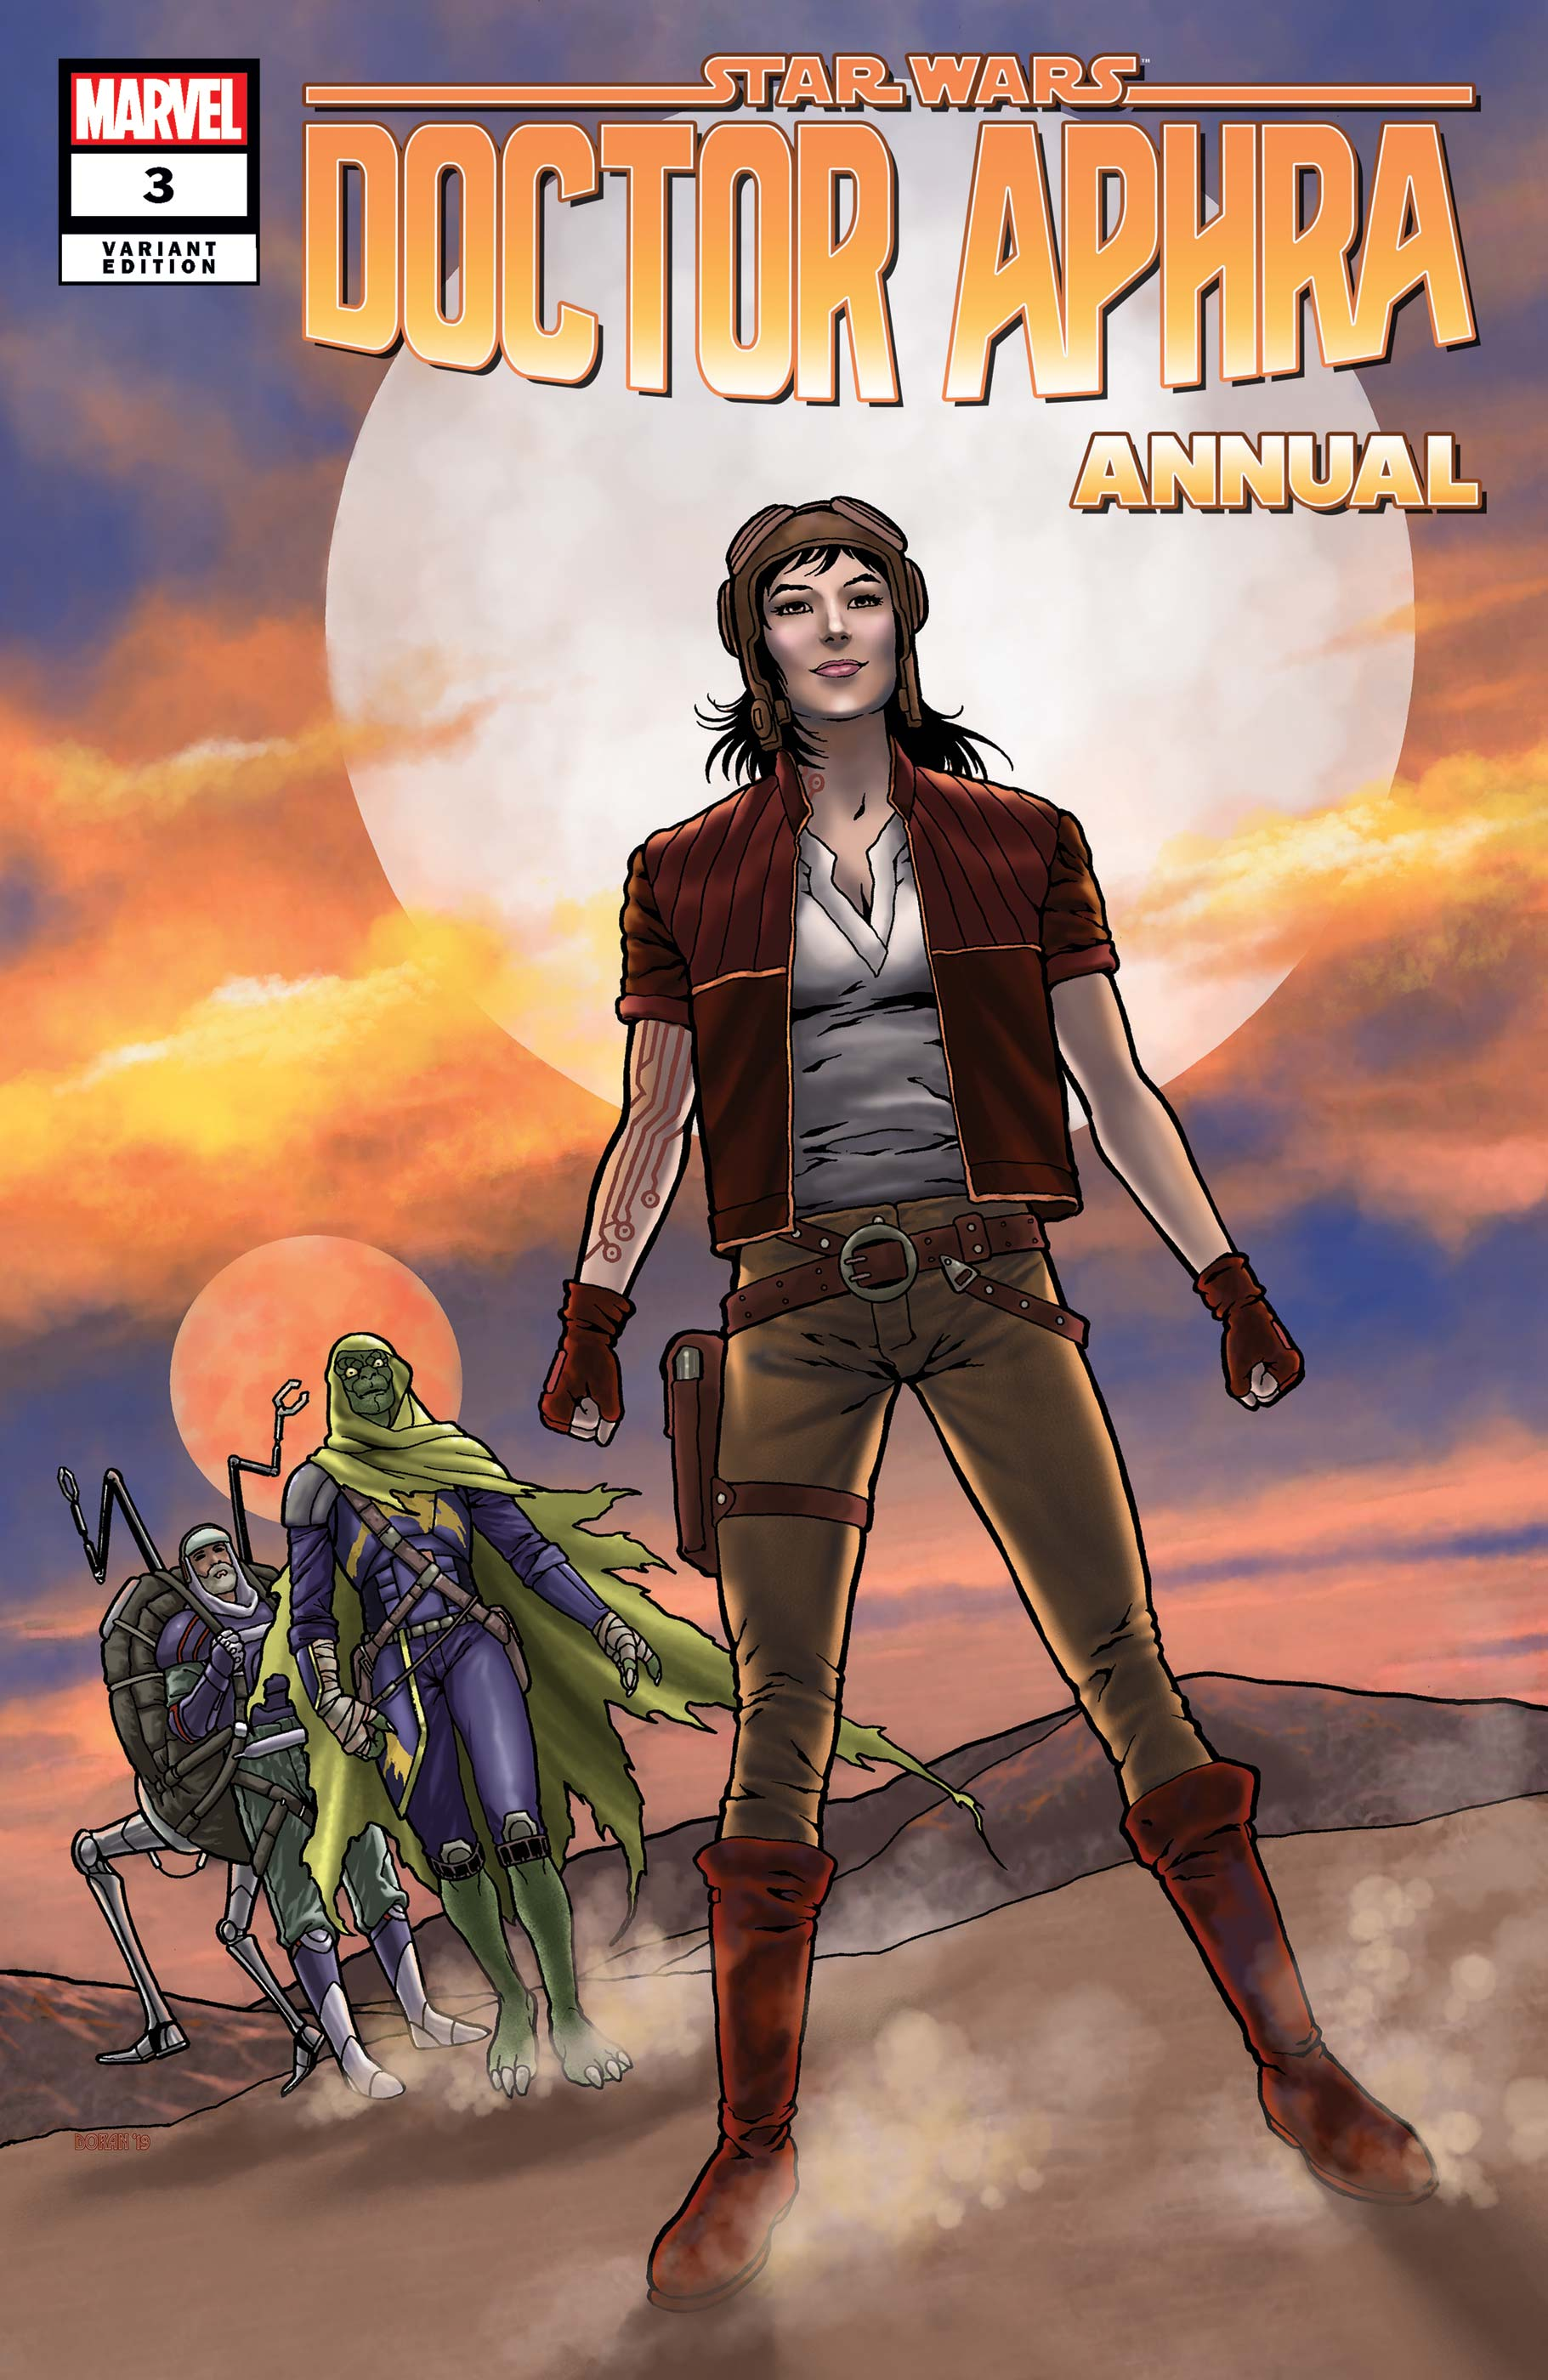 Star Wars: Doctor Aphra Annual (2019) #3 (Variant)